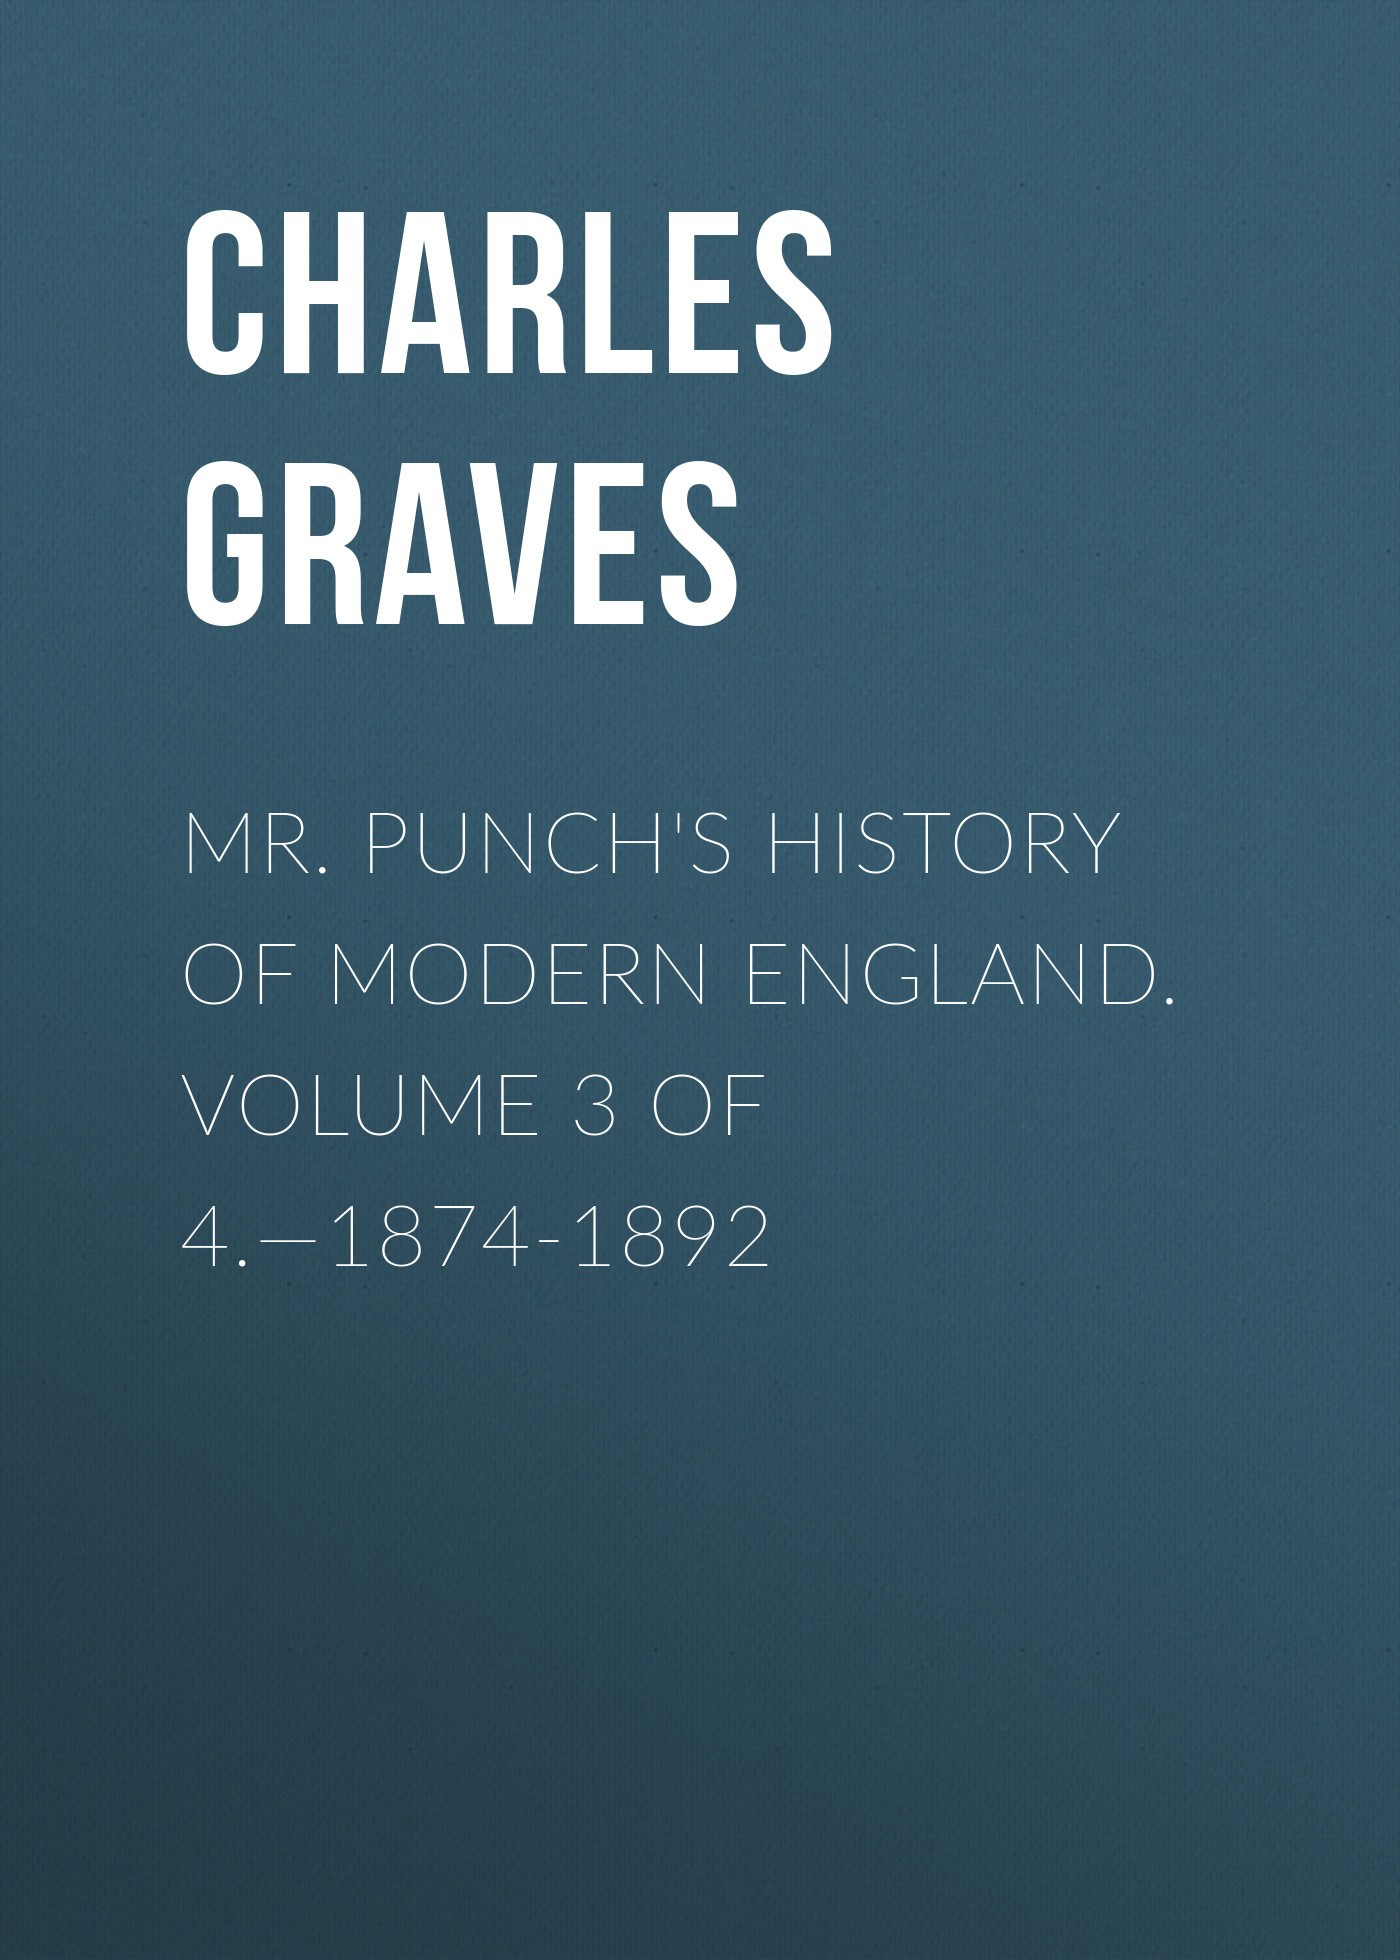 Graves Charles Larcom Mr. Punch's History of Modern England. Volume 3 of 4.—1874-1892 the history of england volume 3 civil war